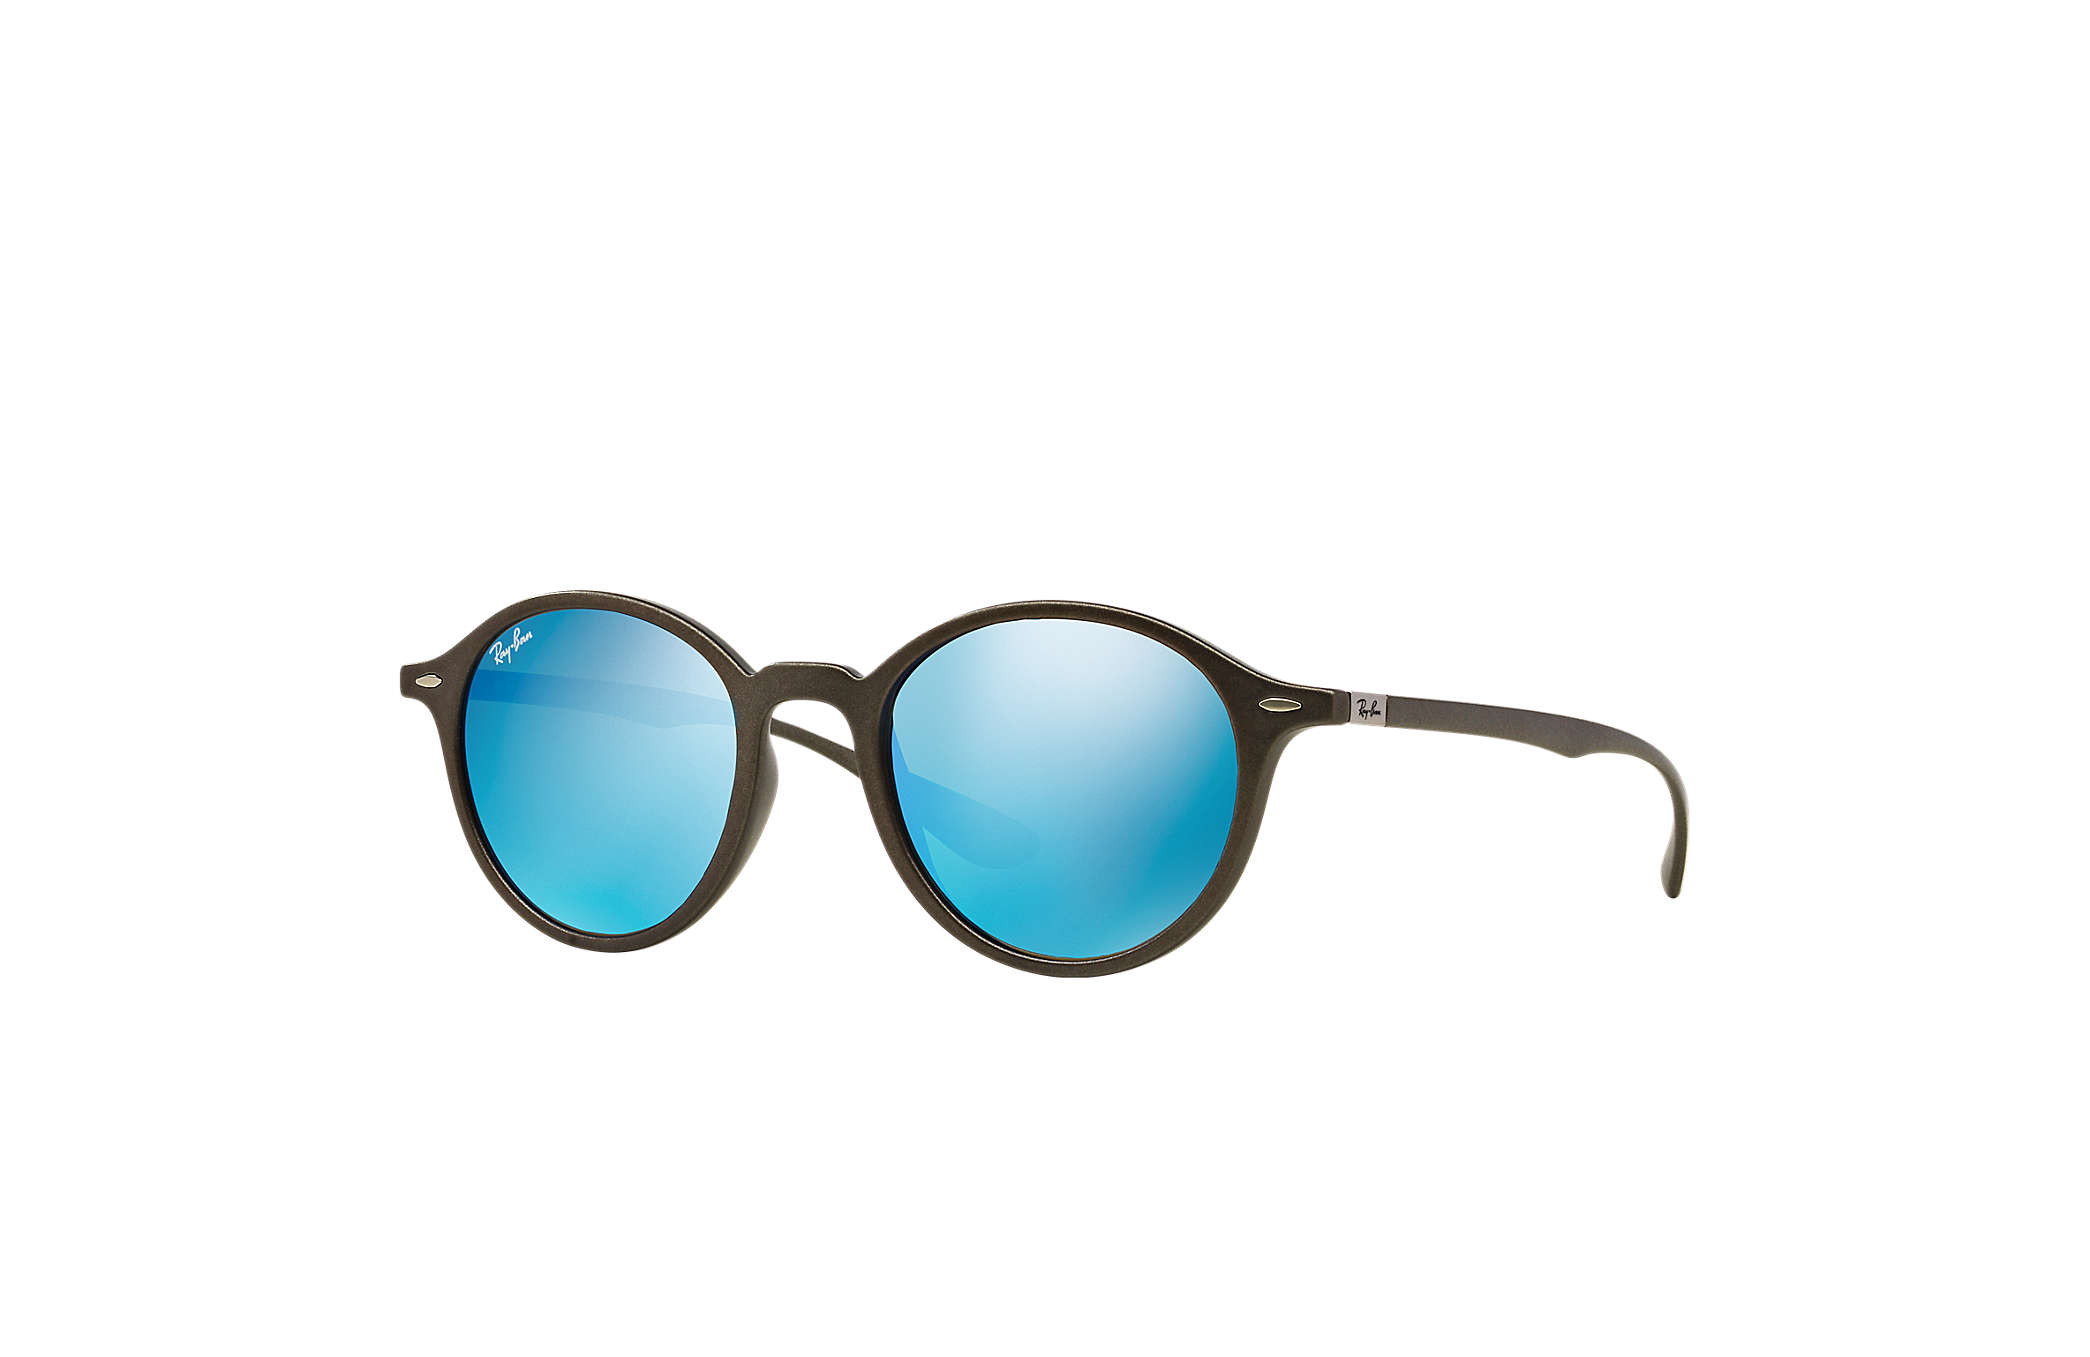 5b43f71b6c2 Ray-Ban Round Liteforce RB4237 Grey - Liteforce - Blue Lenses ...